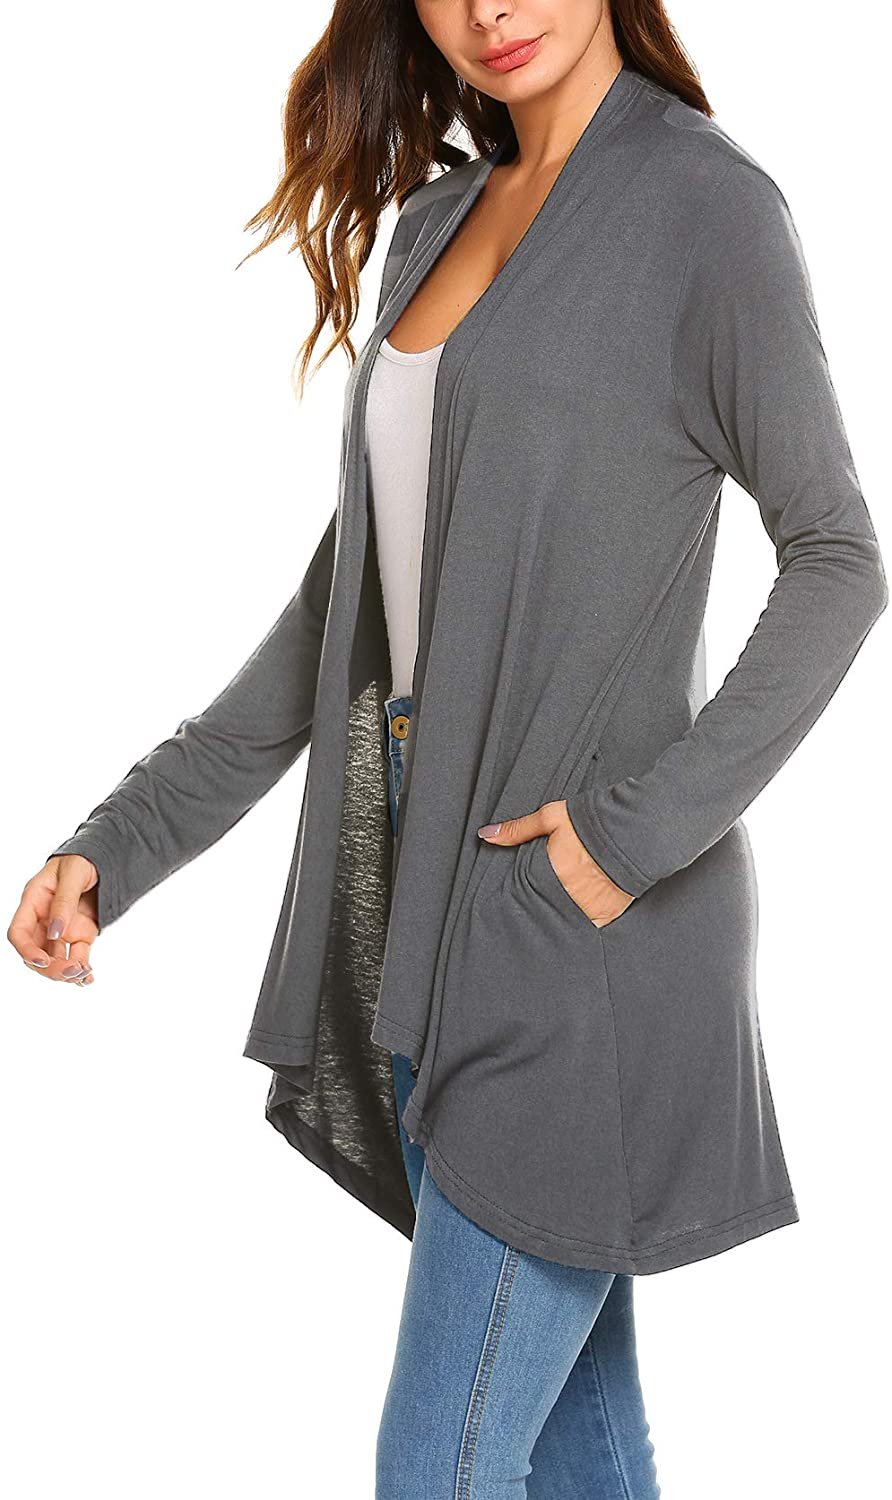 Women's Casual Long Sleeve Max 62% OFF Open Lightweight Drape Front Cardigan 25% OFF